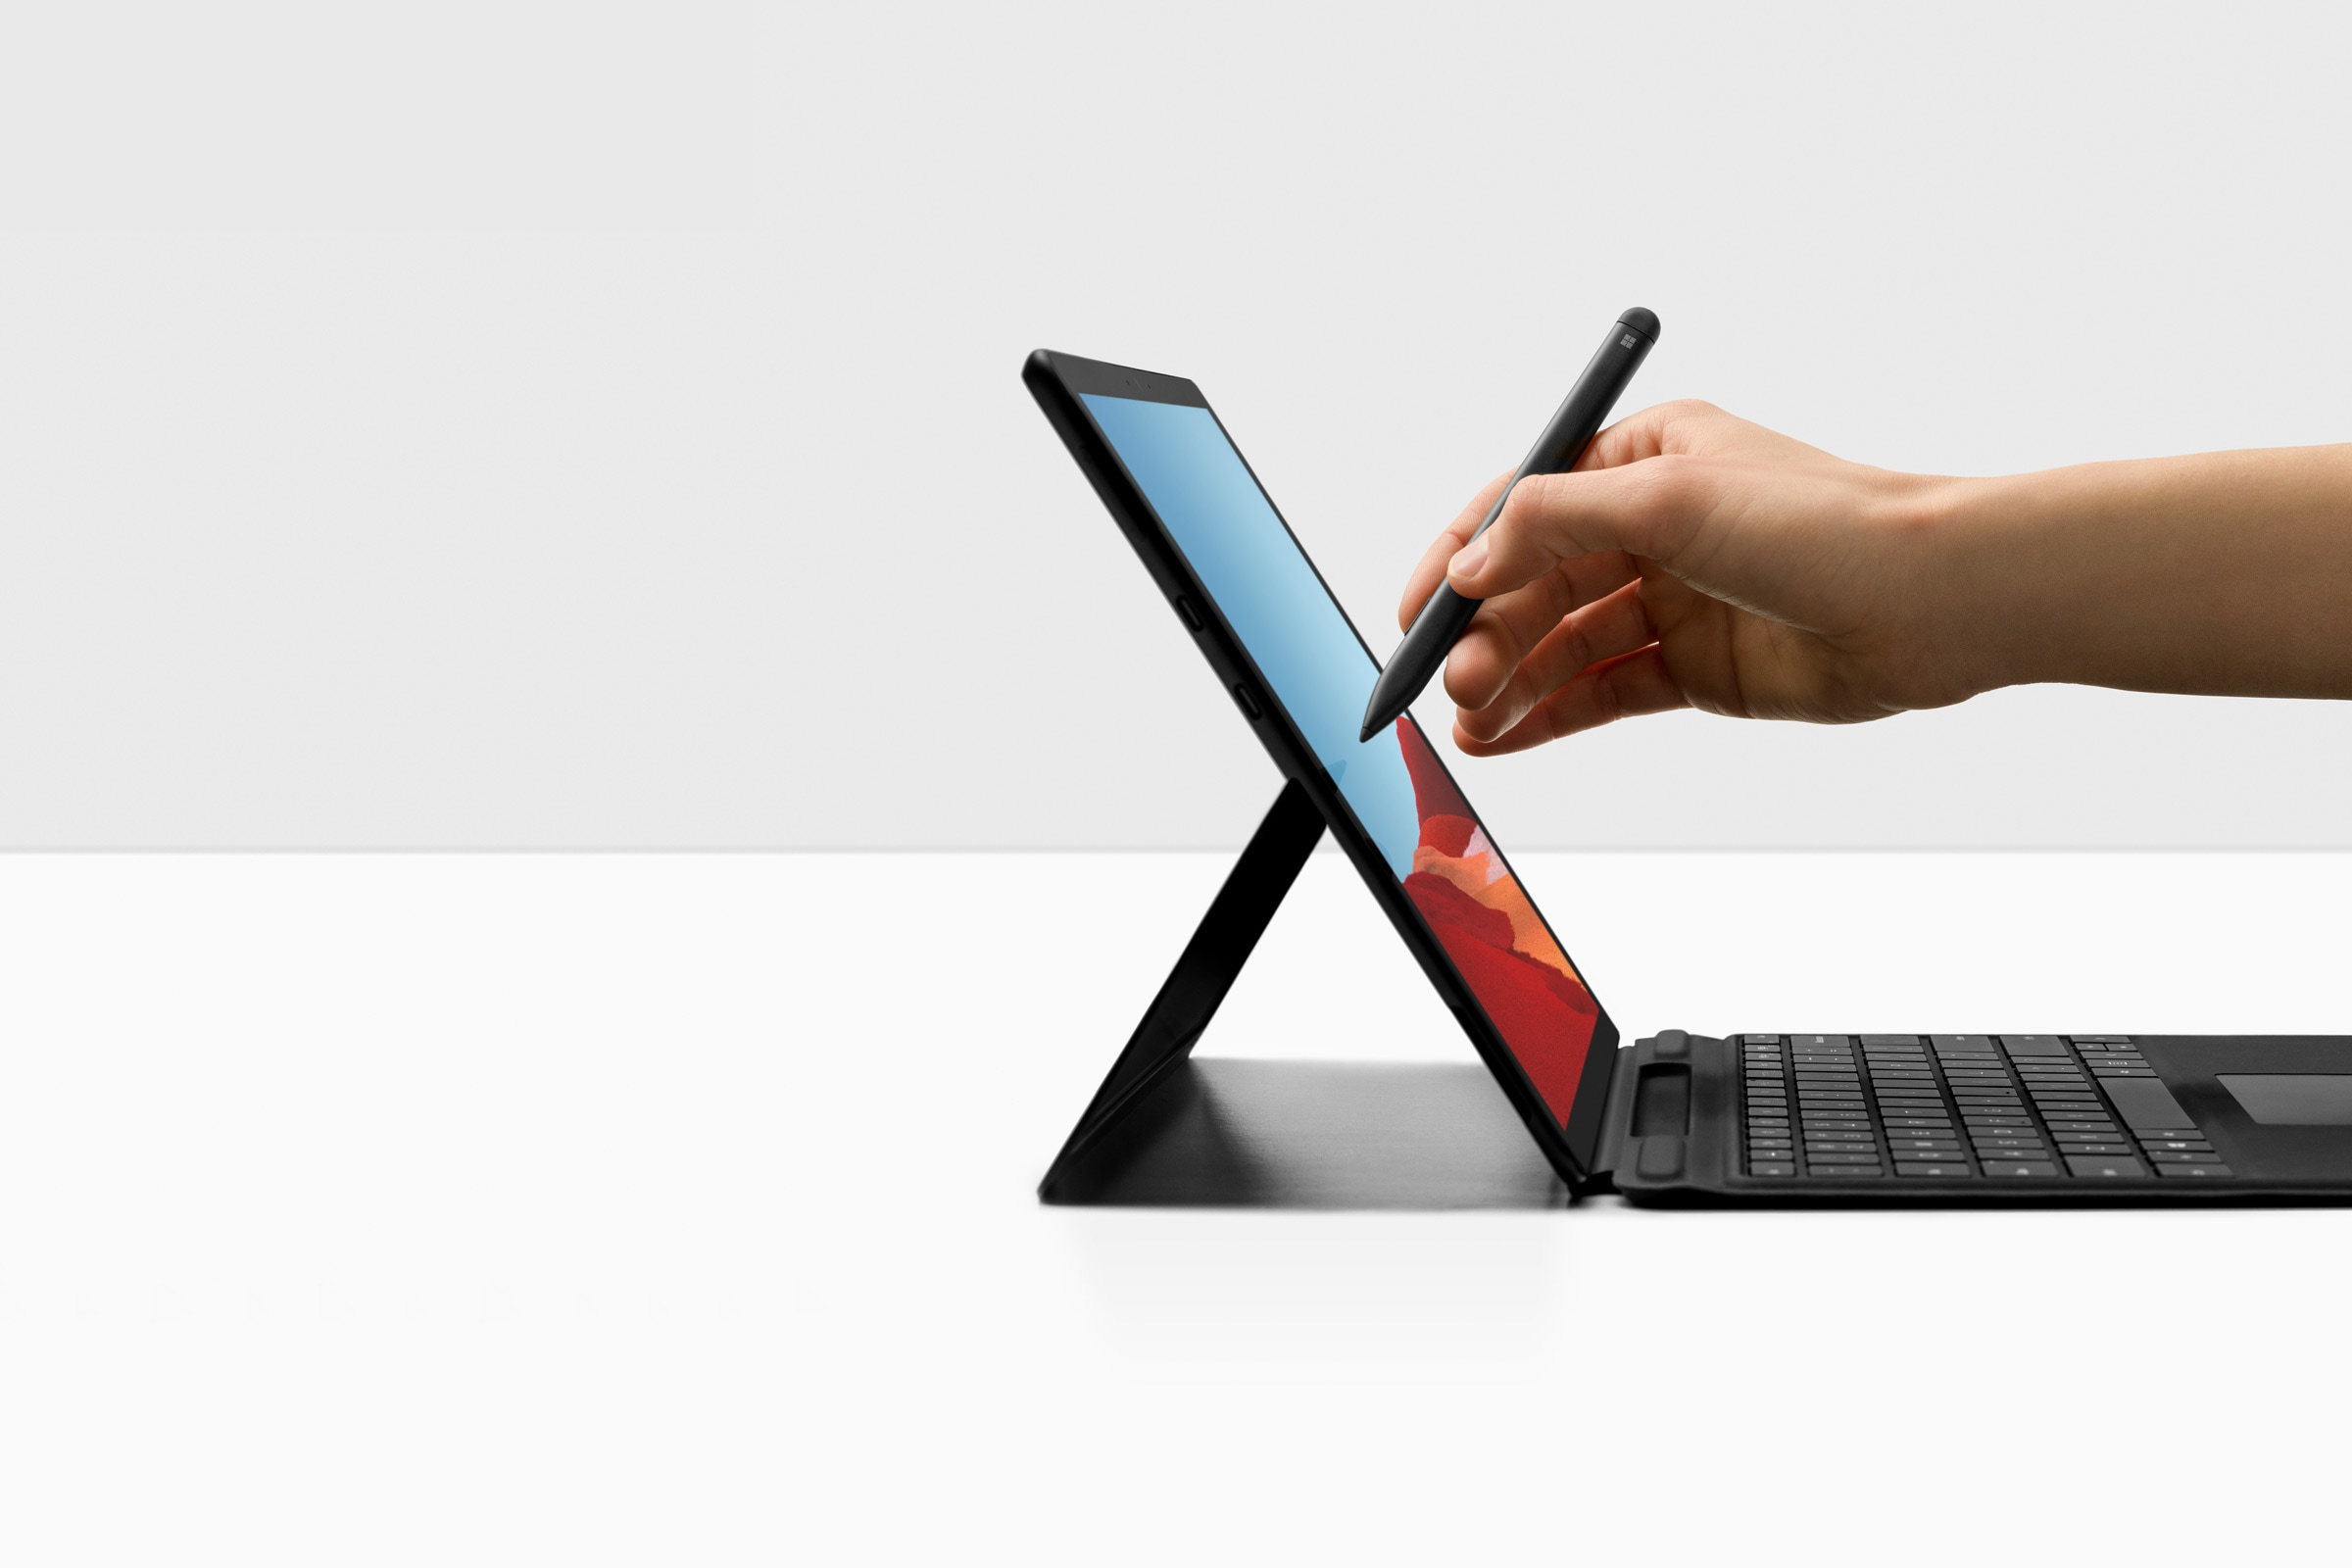 Surface Pro X with Surface Pro X Signature keyboard and Surface Slim Pen